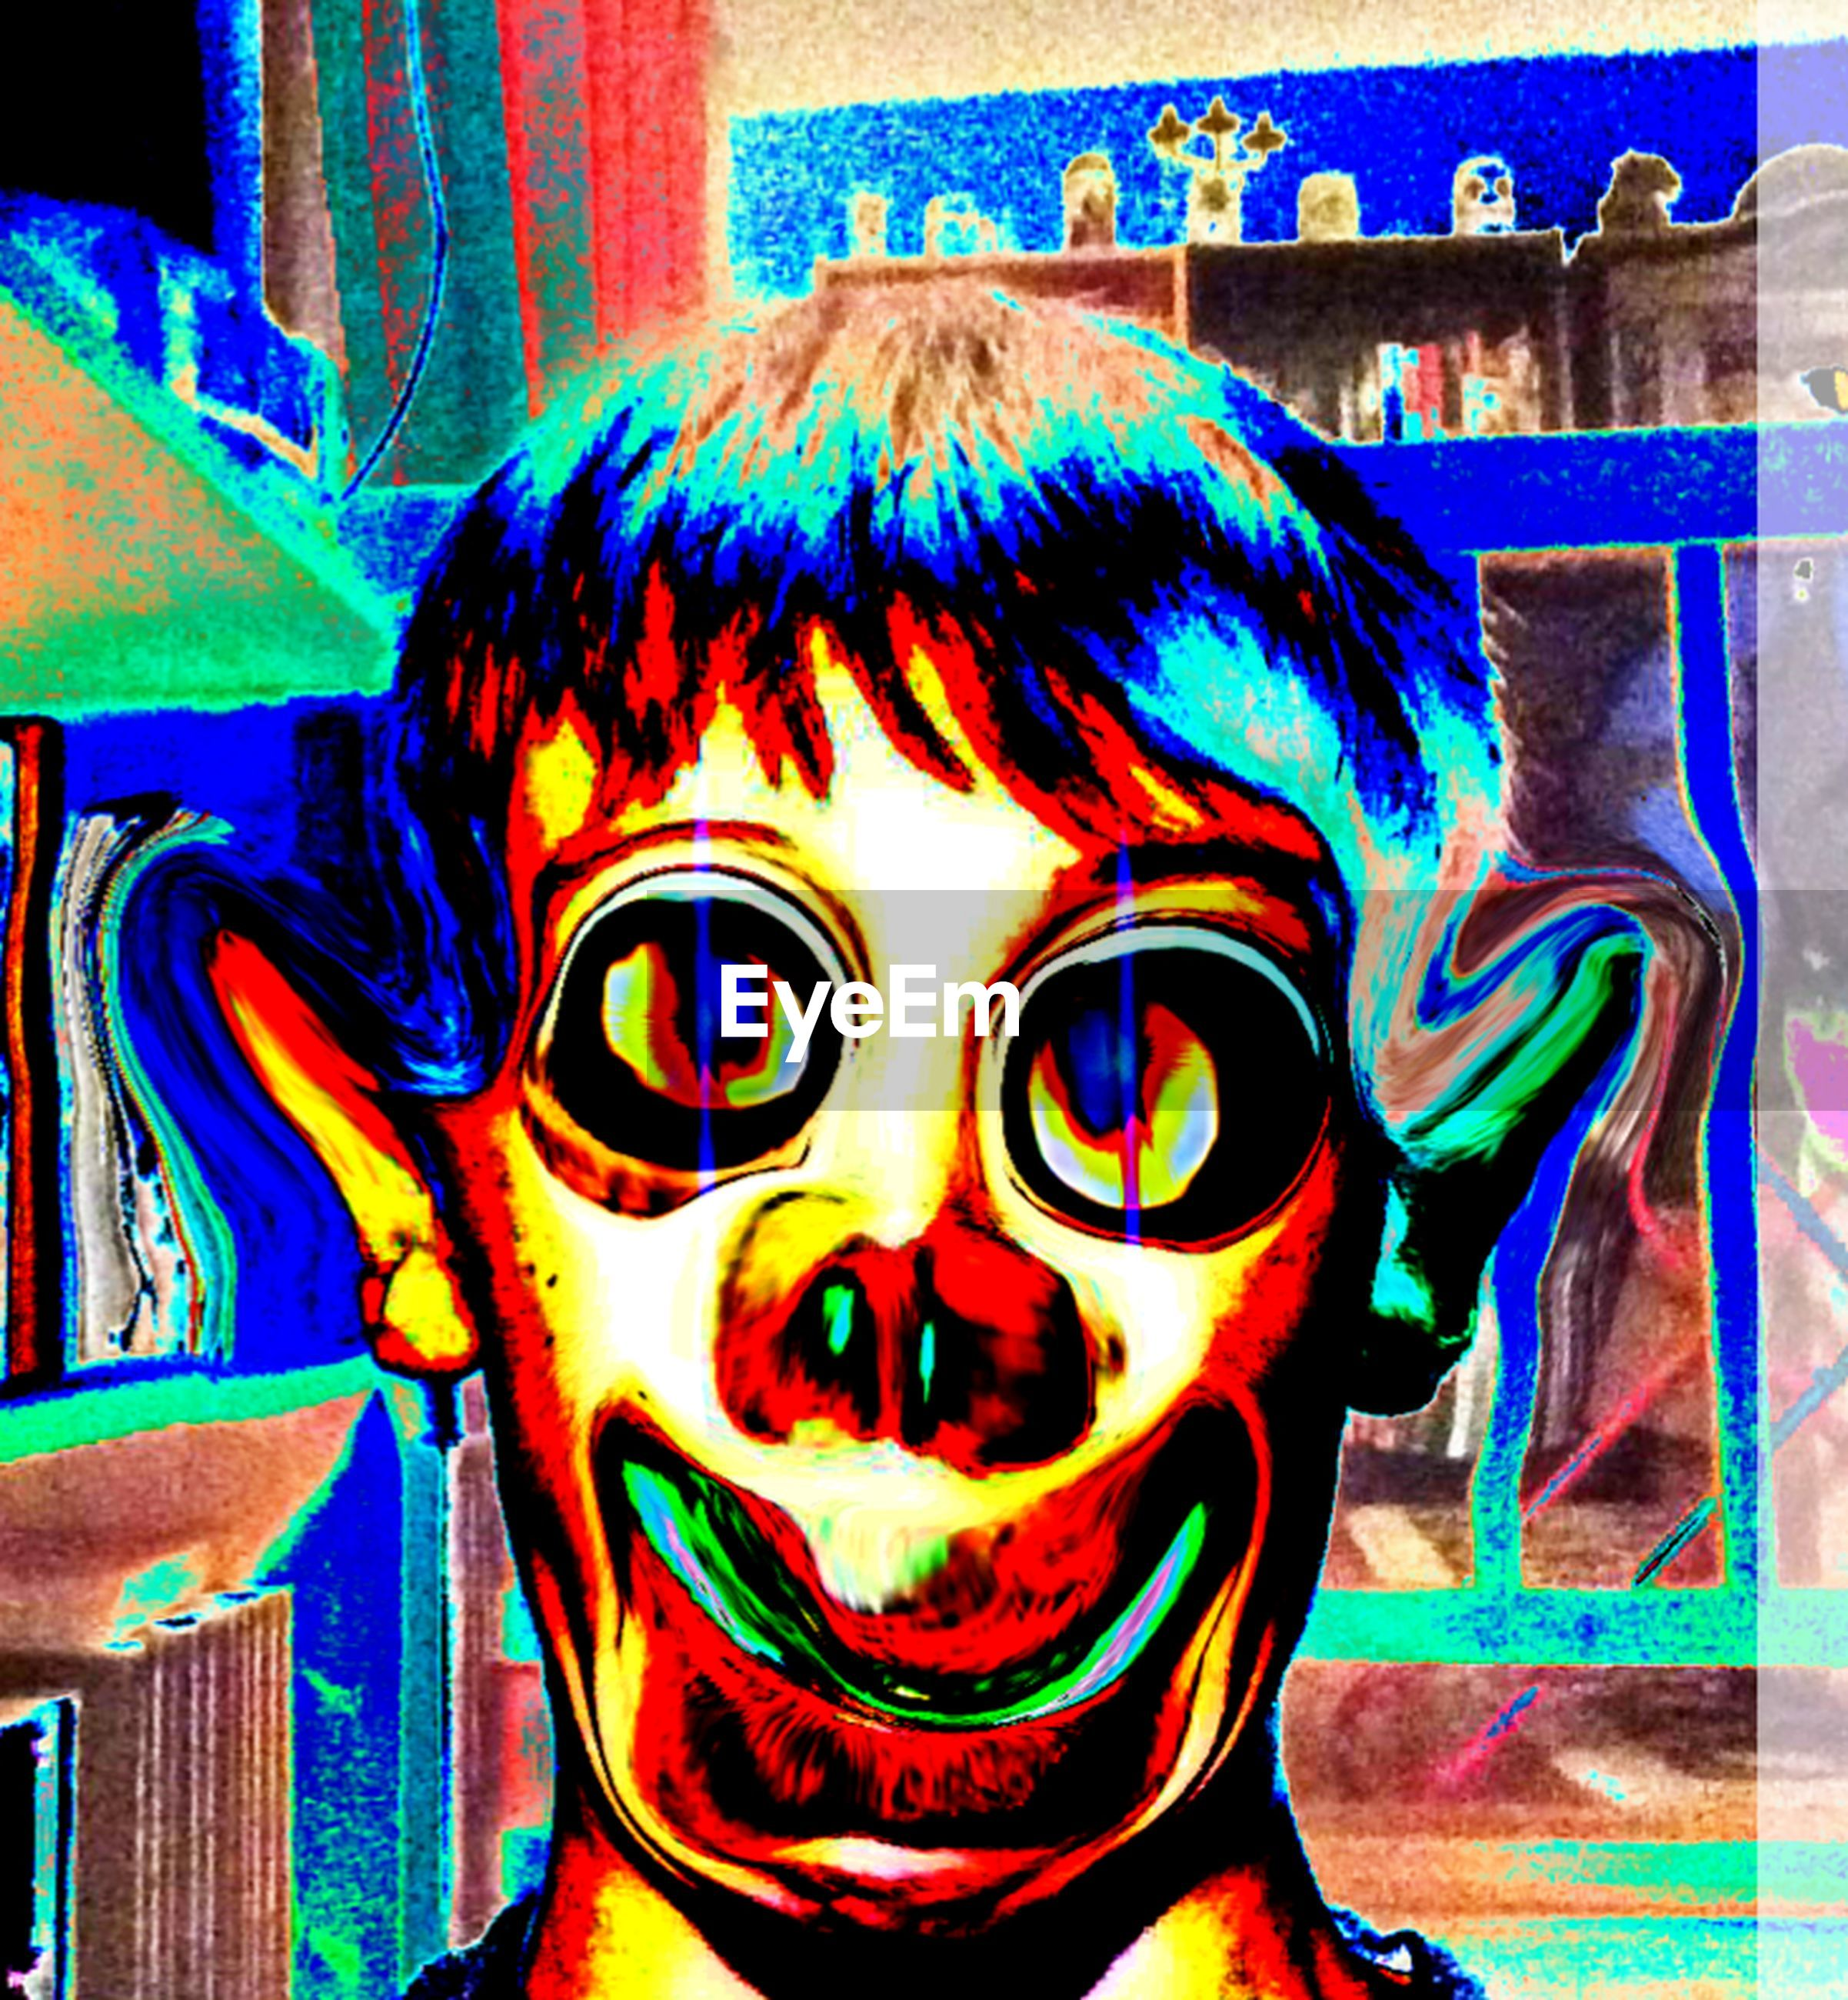 art and craft, art, creativity, multi colored, blue, human representation, graffiti, animal representation, design, craft, close-up, pattern, sculpture, mural, wall - building feature, no people, colorful, painting